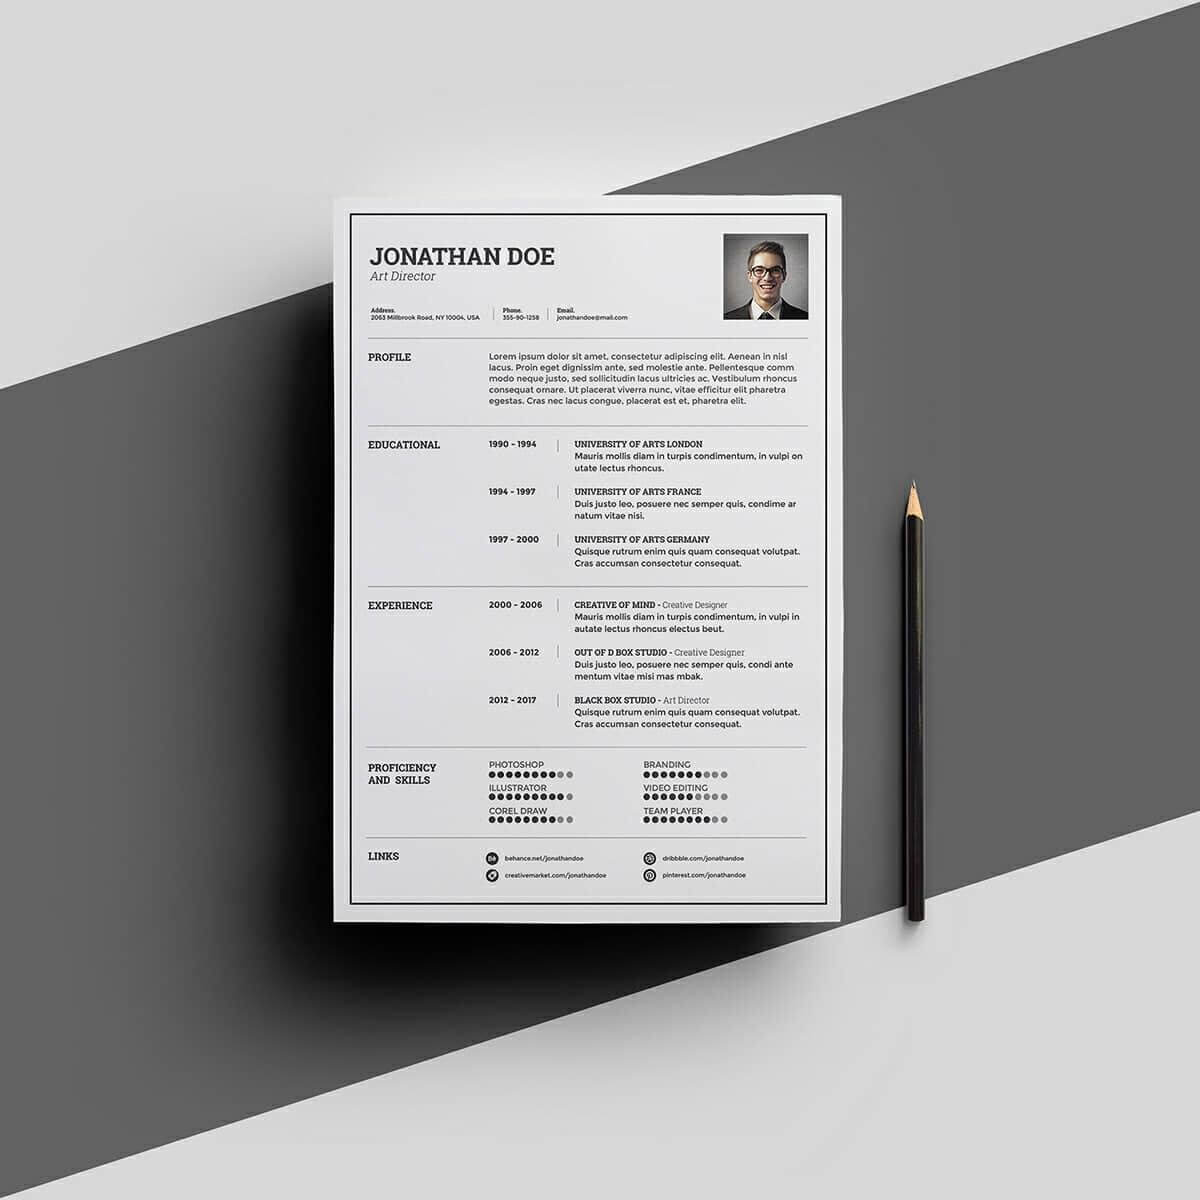 15+ Resume Templates For Microsoft Word [Free Download] Regarding Free Downloadable Resume Templates For Word